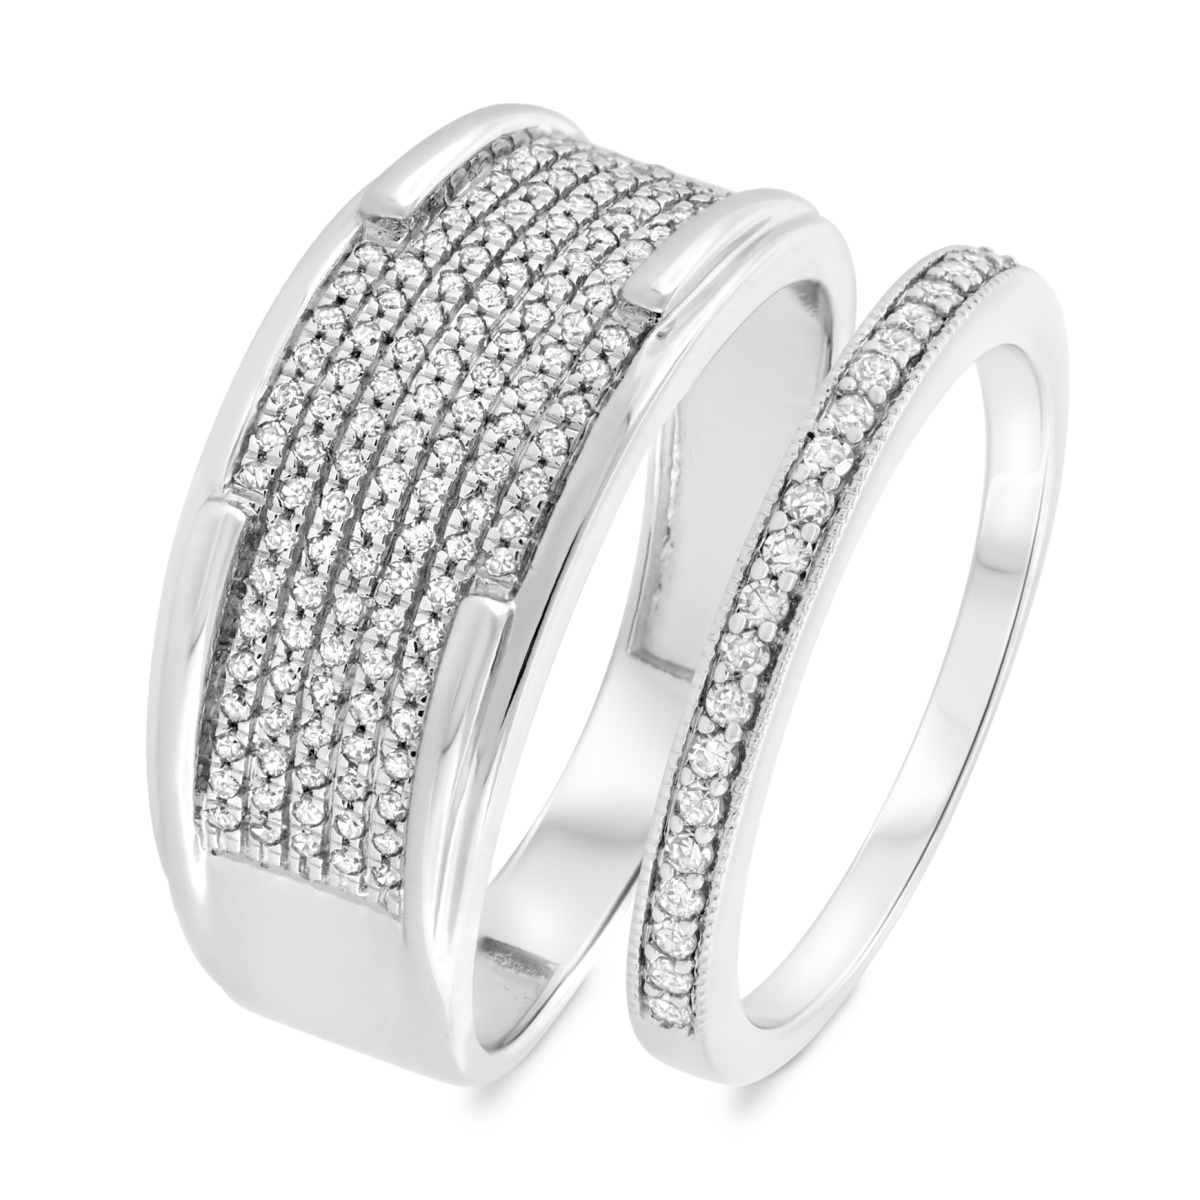 1/2 Carat T.W. Diamond Matching Wedding Band Set 14K White Gold